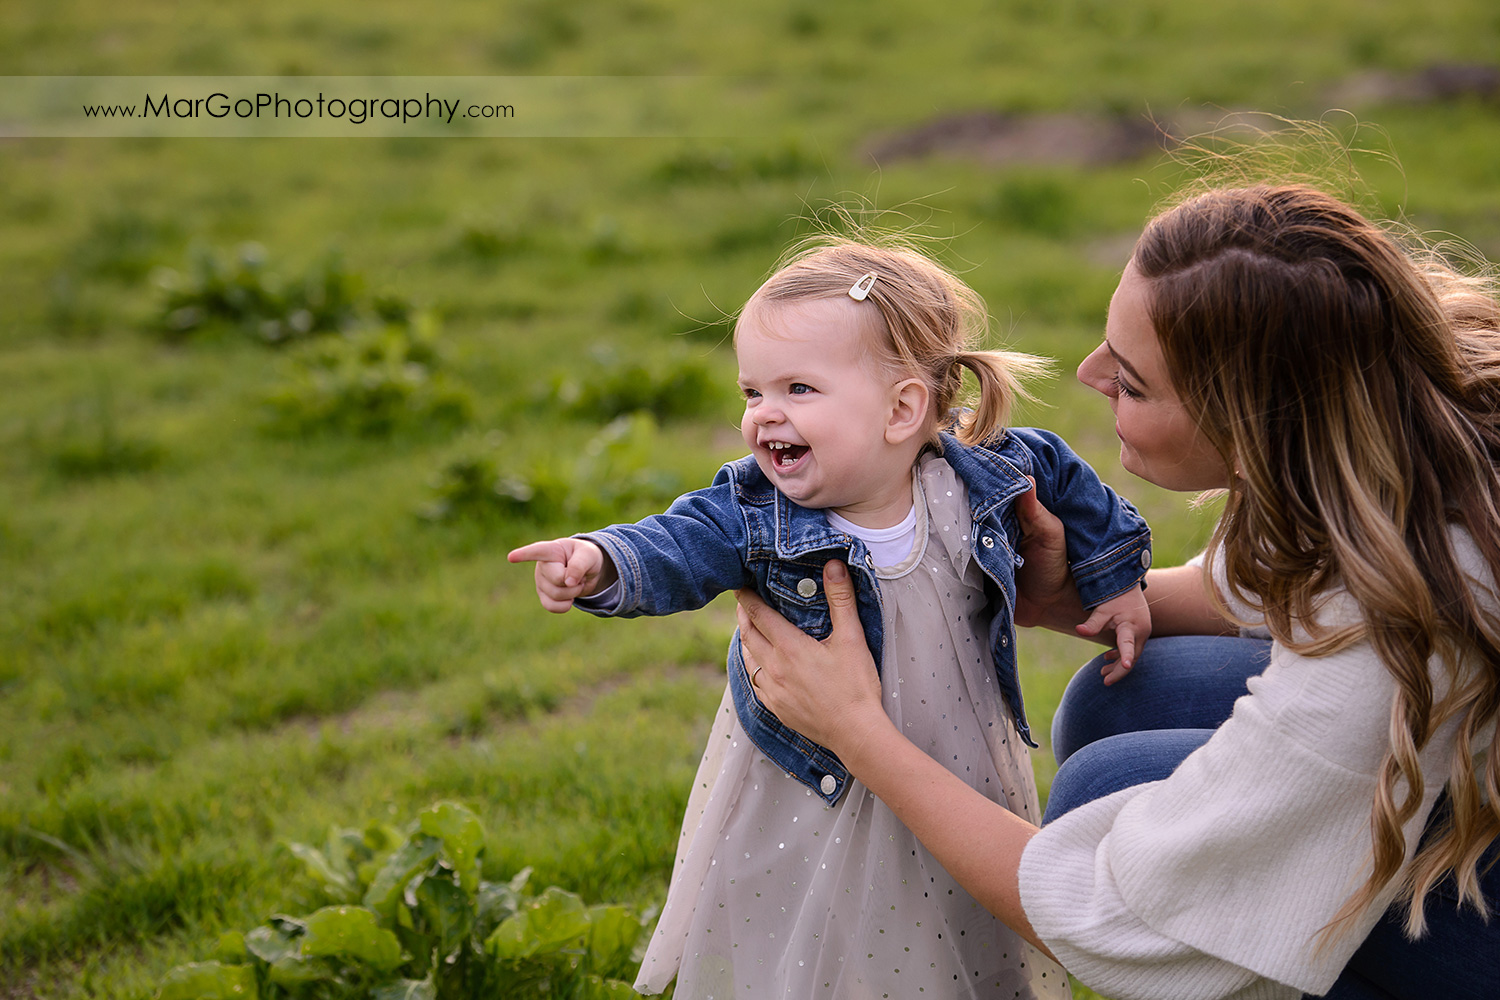 little girl in white dress and jeans jacket and woman in white blouse and jeans laughing during family session at San Jose Martial Cottle Park